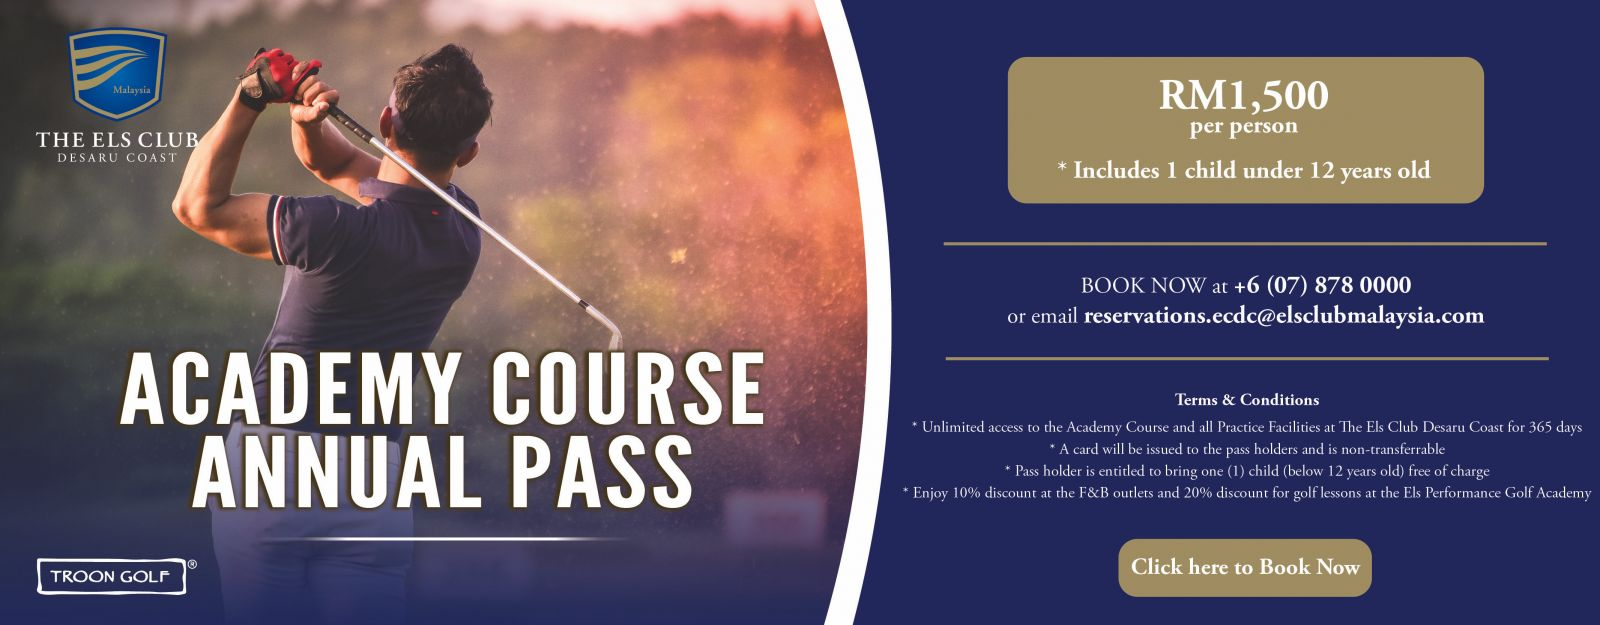 academy course annual pass